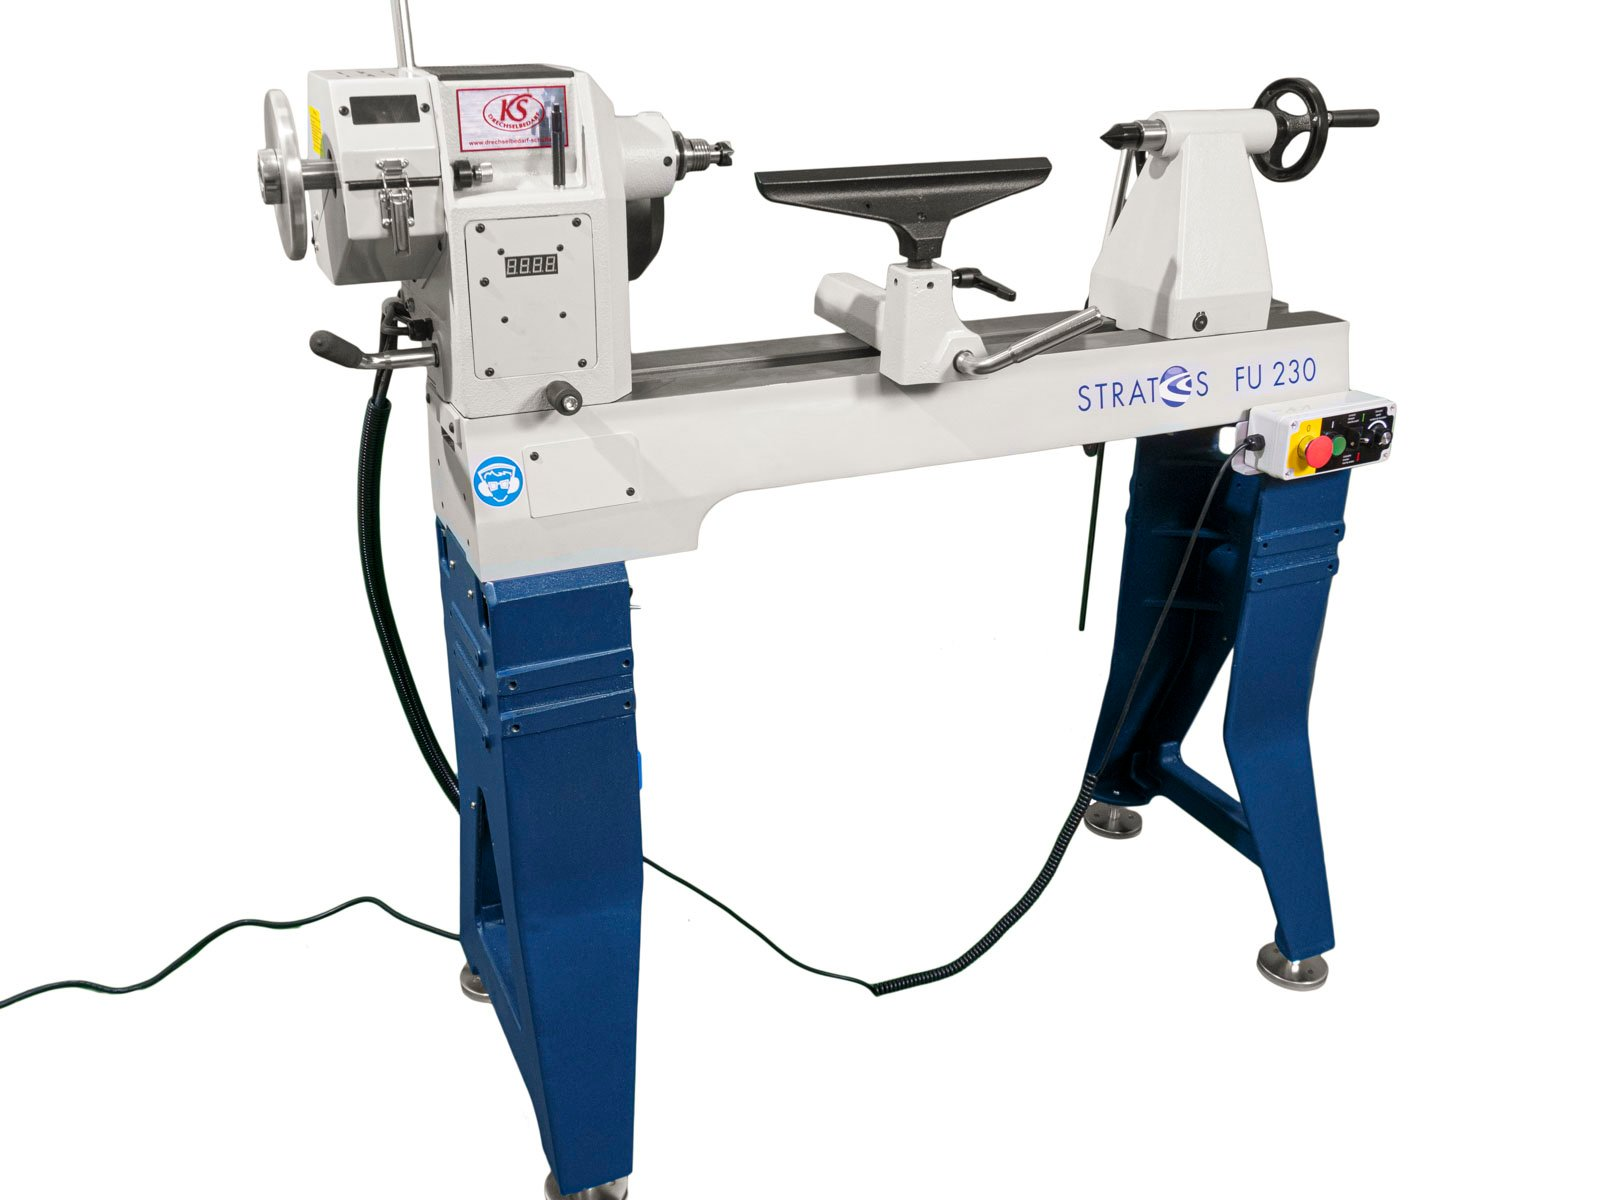 Stratos-FU-230-Drechselmaschine-Totale-vorne-links